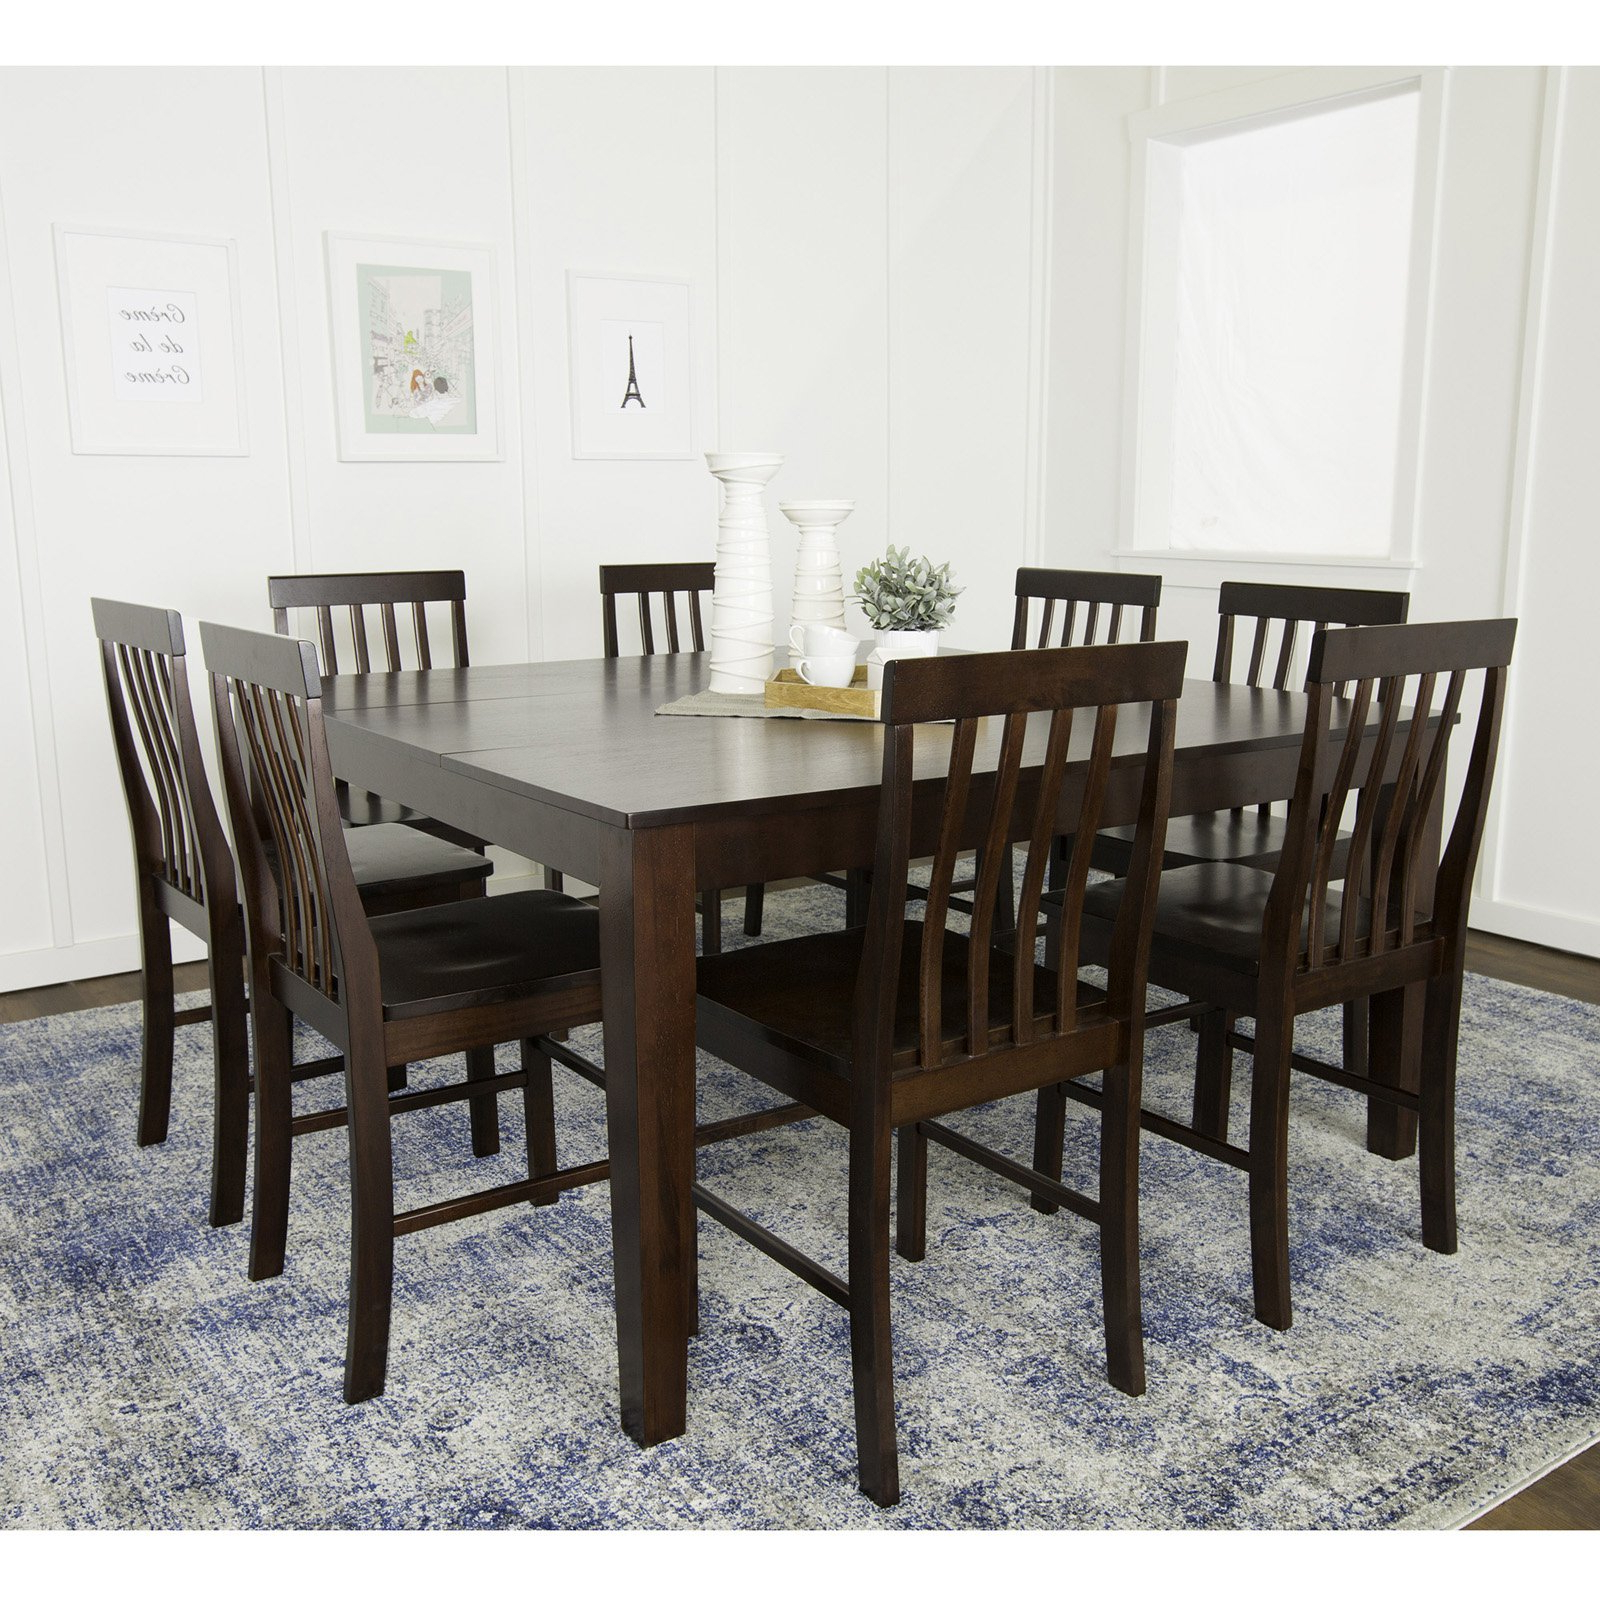 Cappuccino Finish Wood Classic Casual Dining Tables Within Trendy Walker Edison Solid Wood Casual Dining Table – Cappuccino (View 13 of 30)